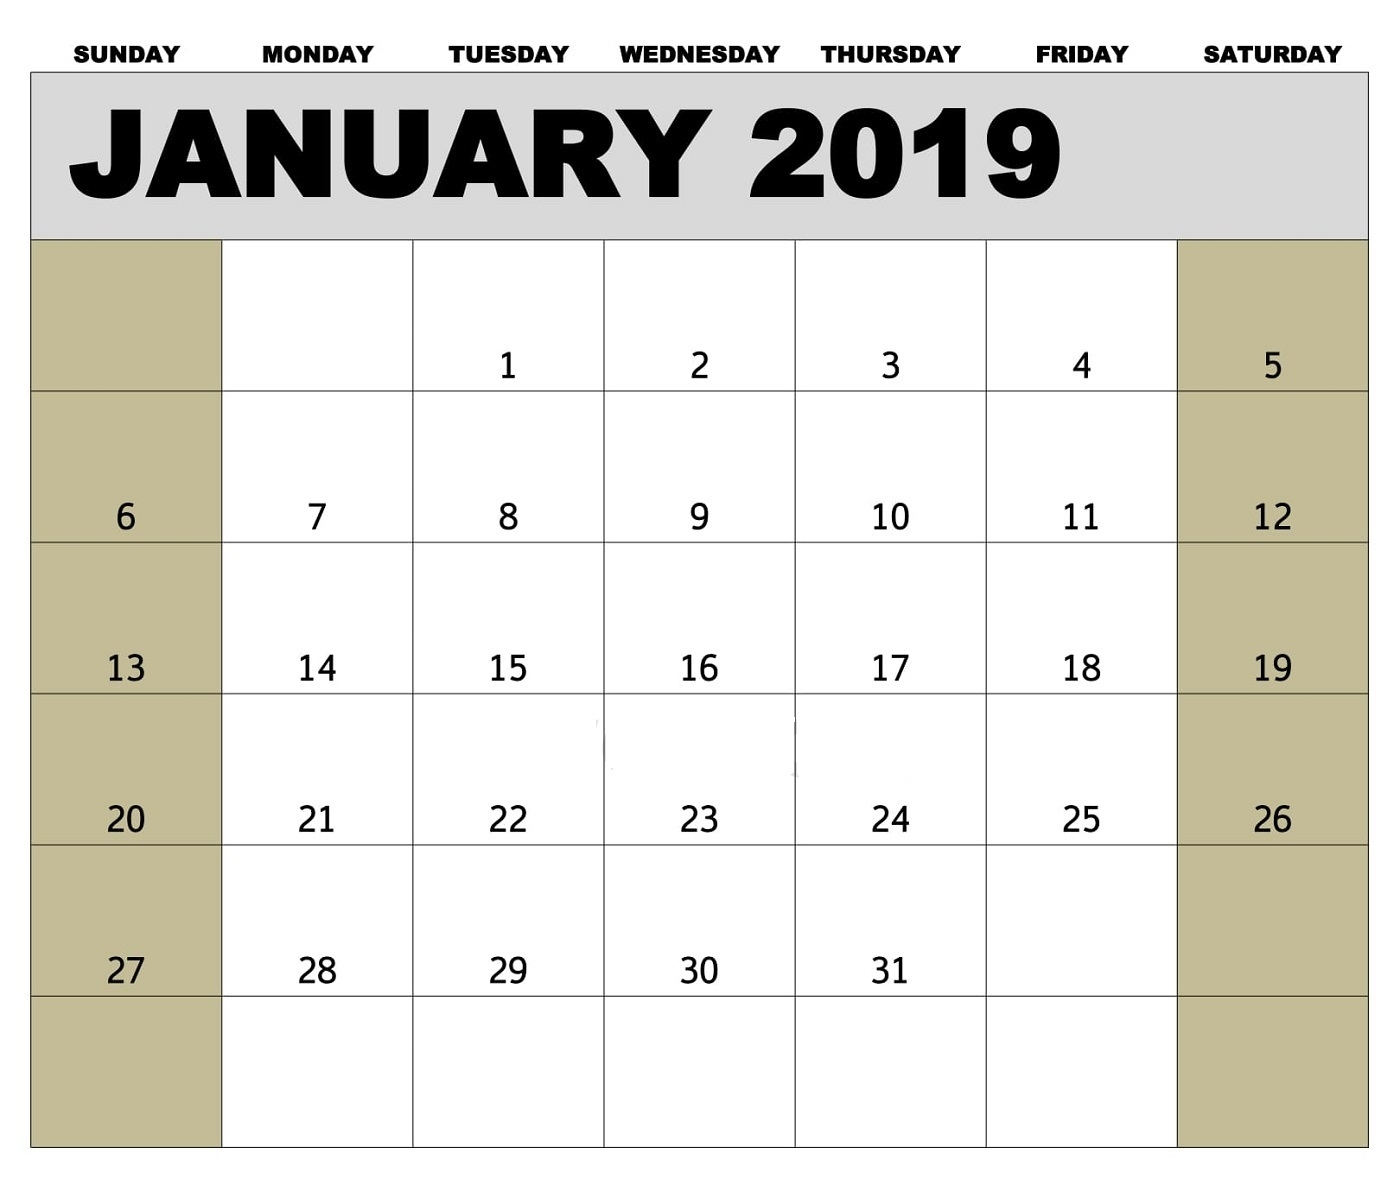 2019 calendar january canada printable blank archives picture::January 2019 Calendar with Holidays Printable